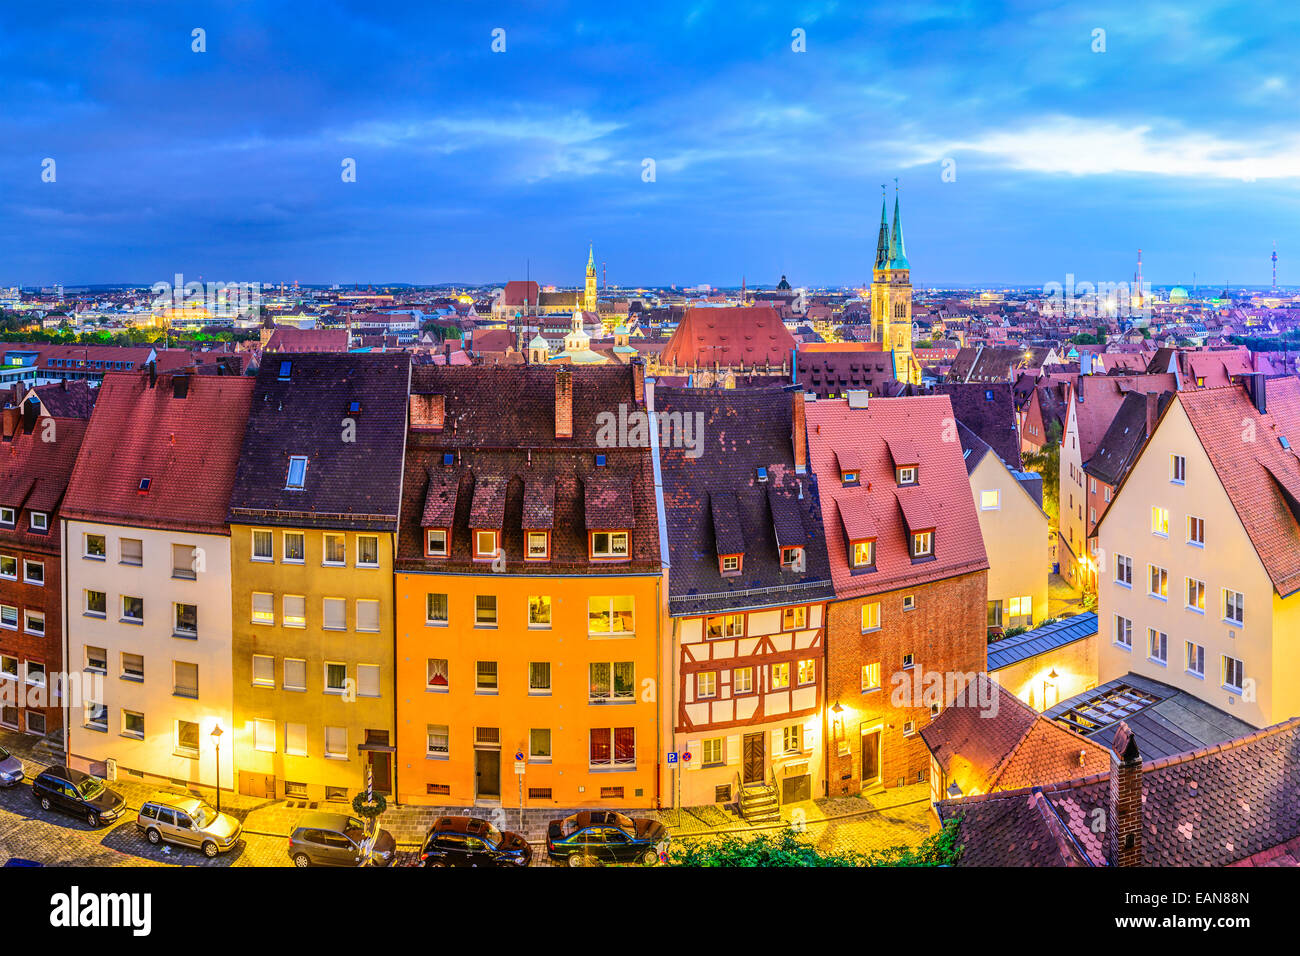 Nuremberg, Allemagne vieille ville. Photo Stock